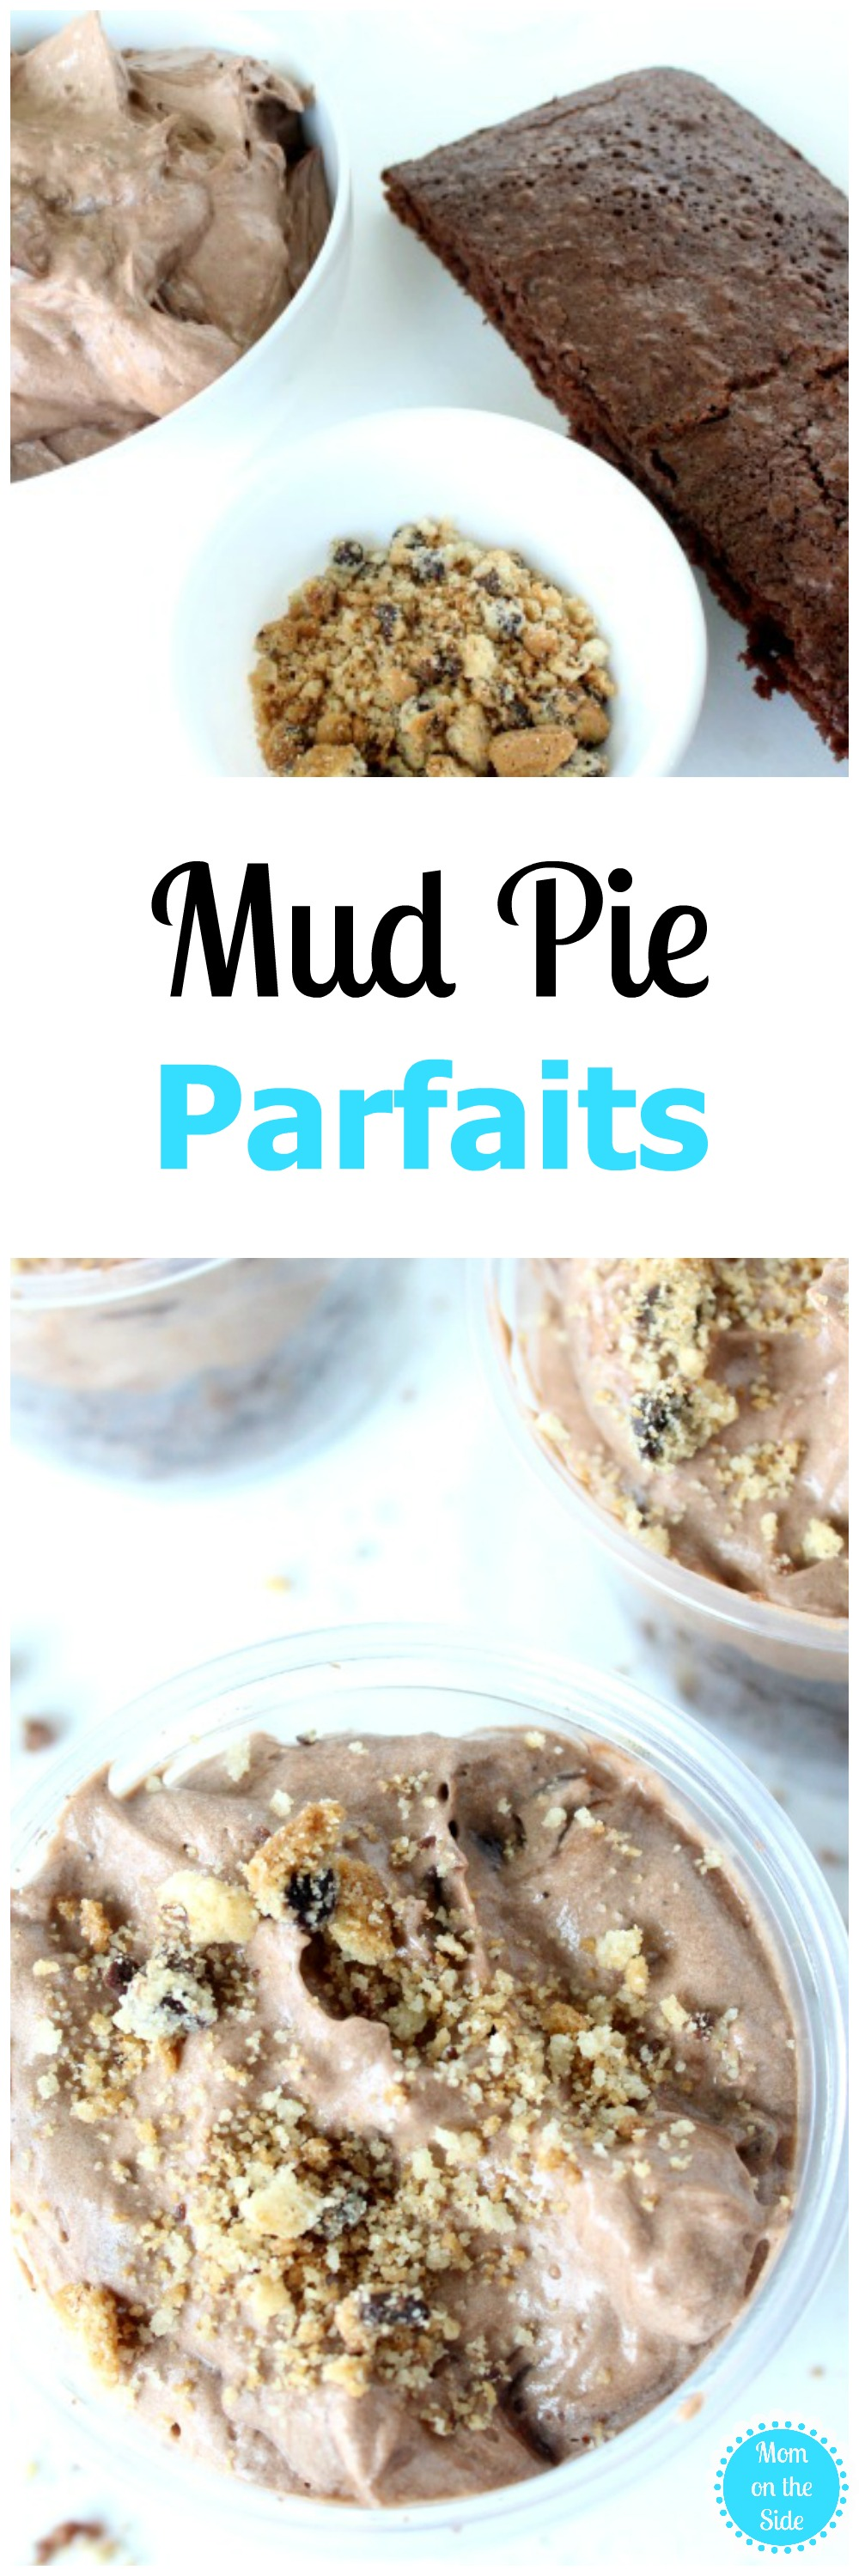 Add making Mud Pies and Mud Pie Parfaits to your Spring must do list! Grab the recipe on Mom on the Side today and a secret weapon to avoid mess stress!